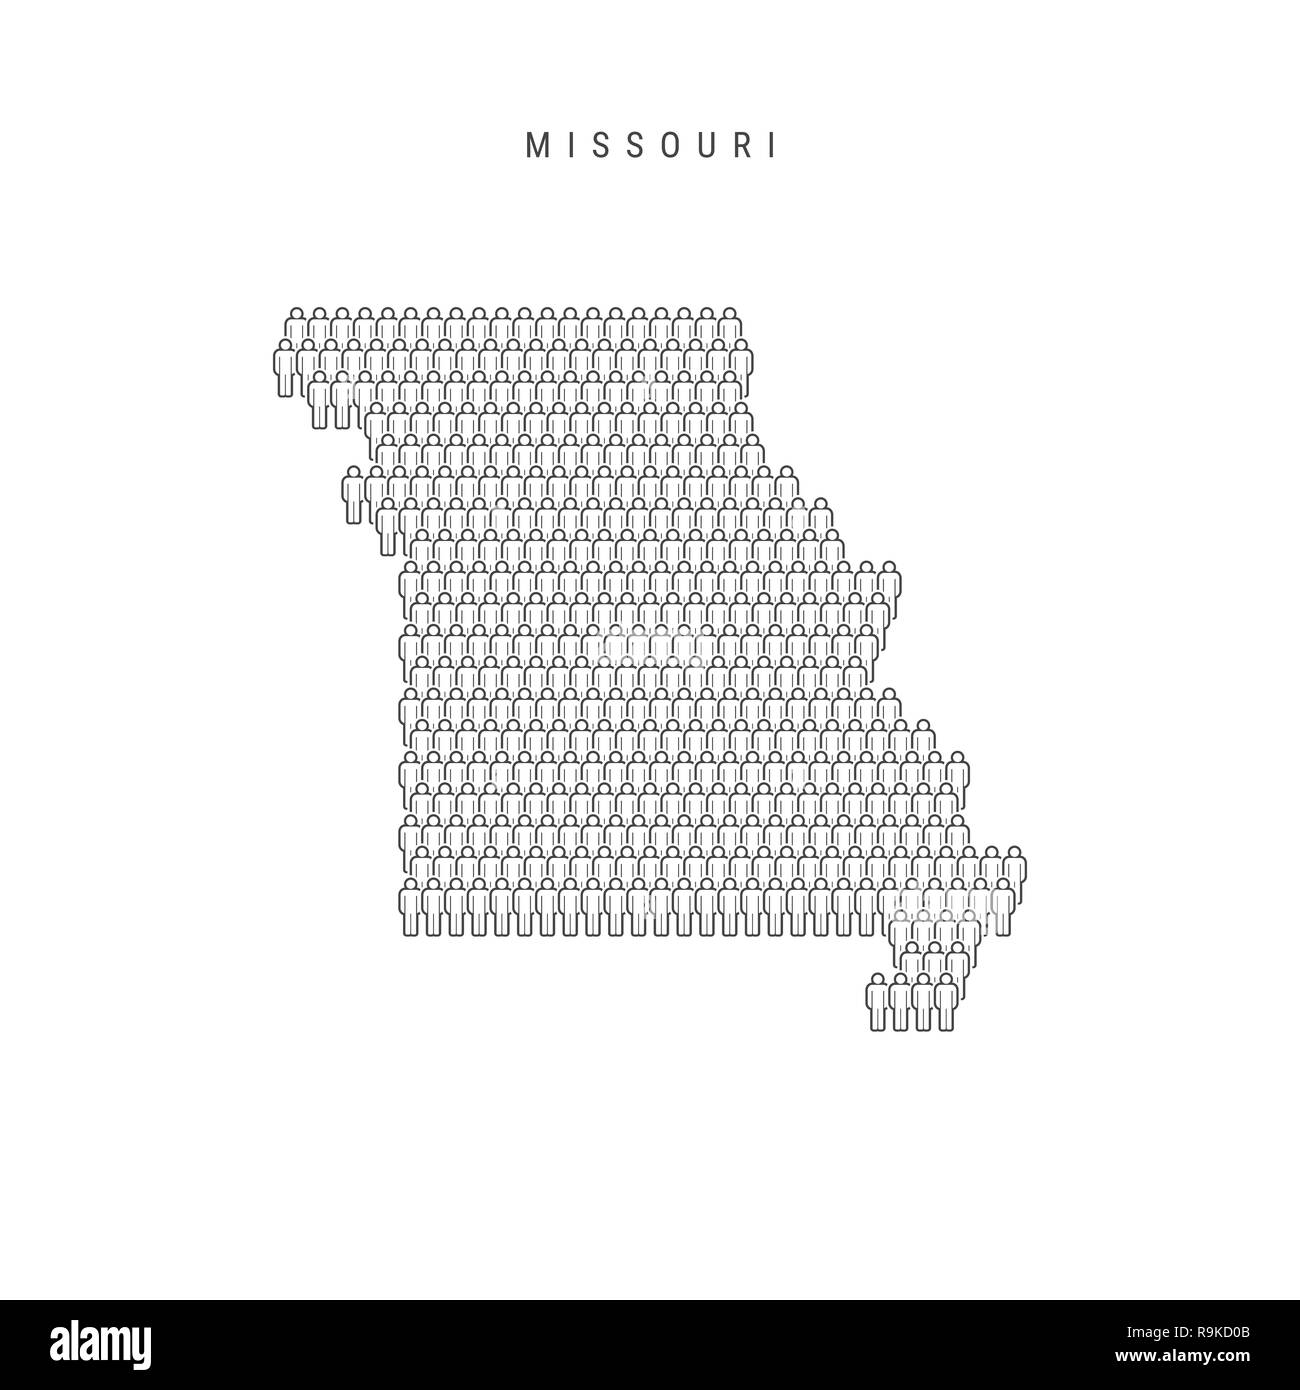 People Map Of Missouri Us State Stylized Silhouette People Crowd